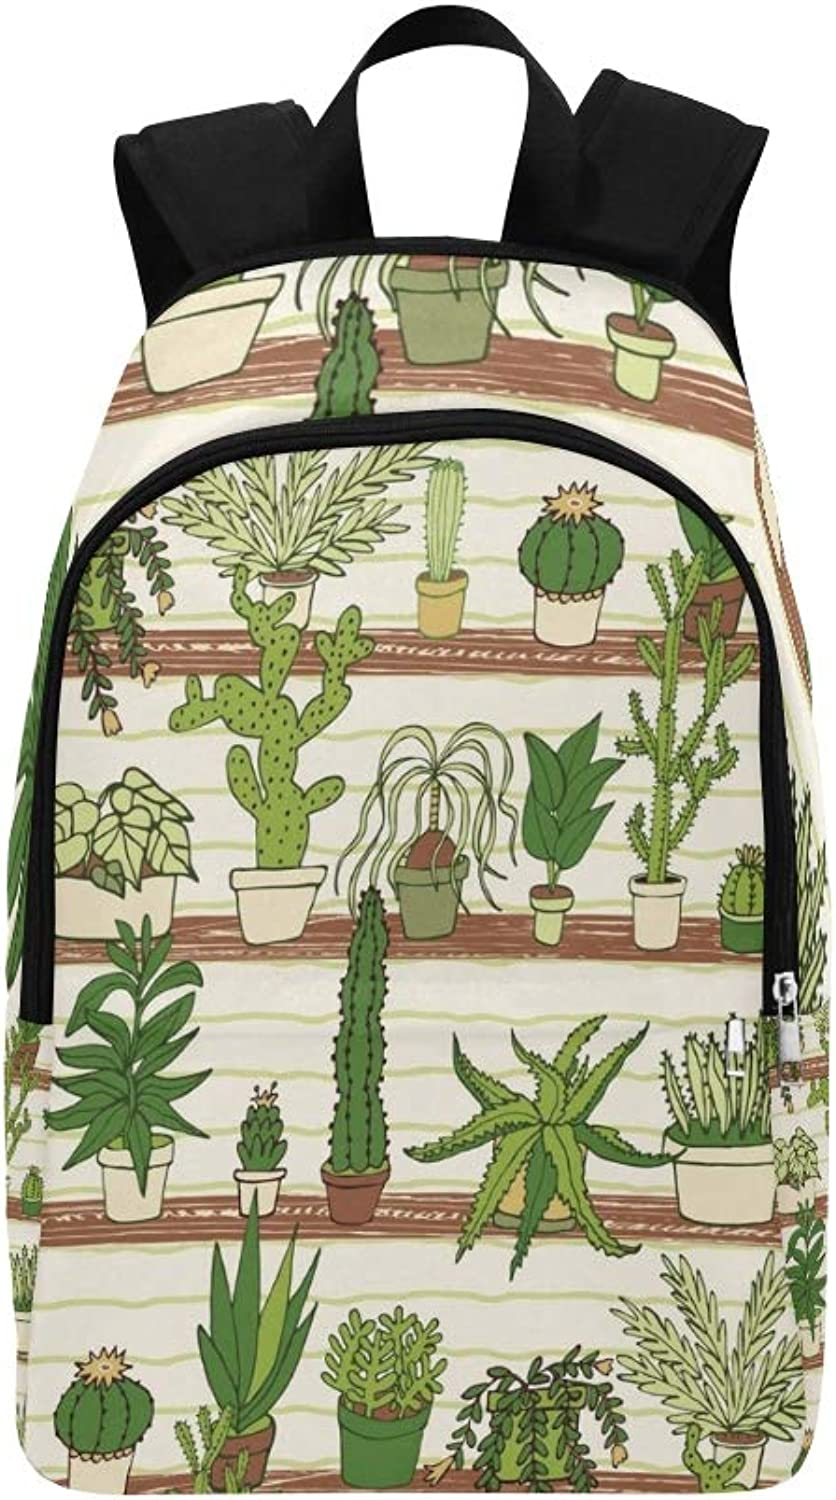 Cactus Casual Daypack Travel Bag College School Backpack for Mens and Women